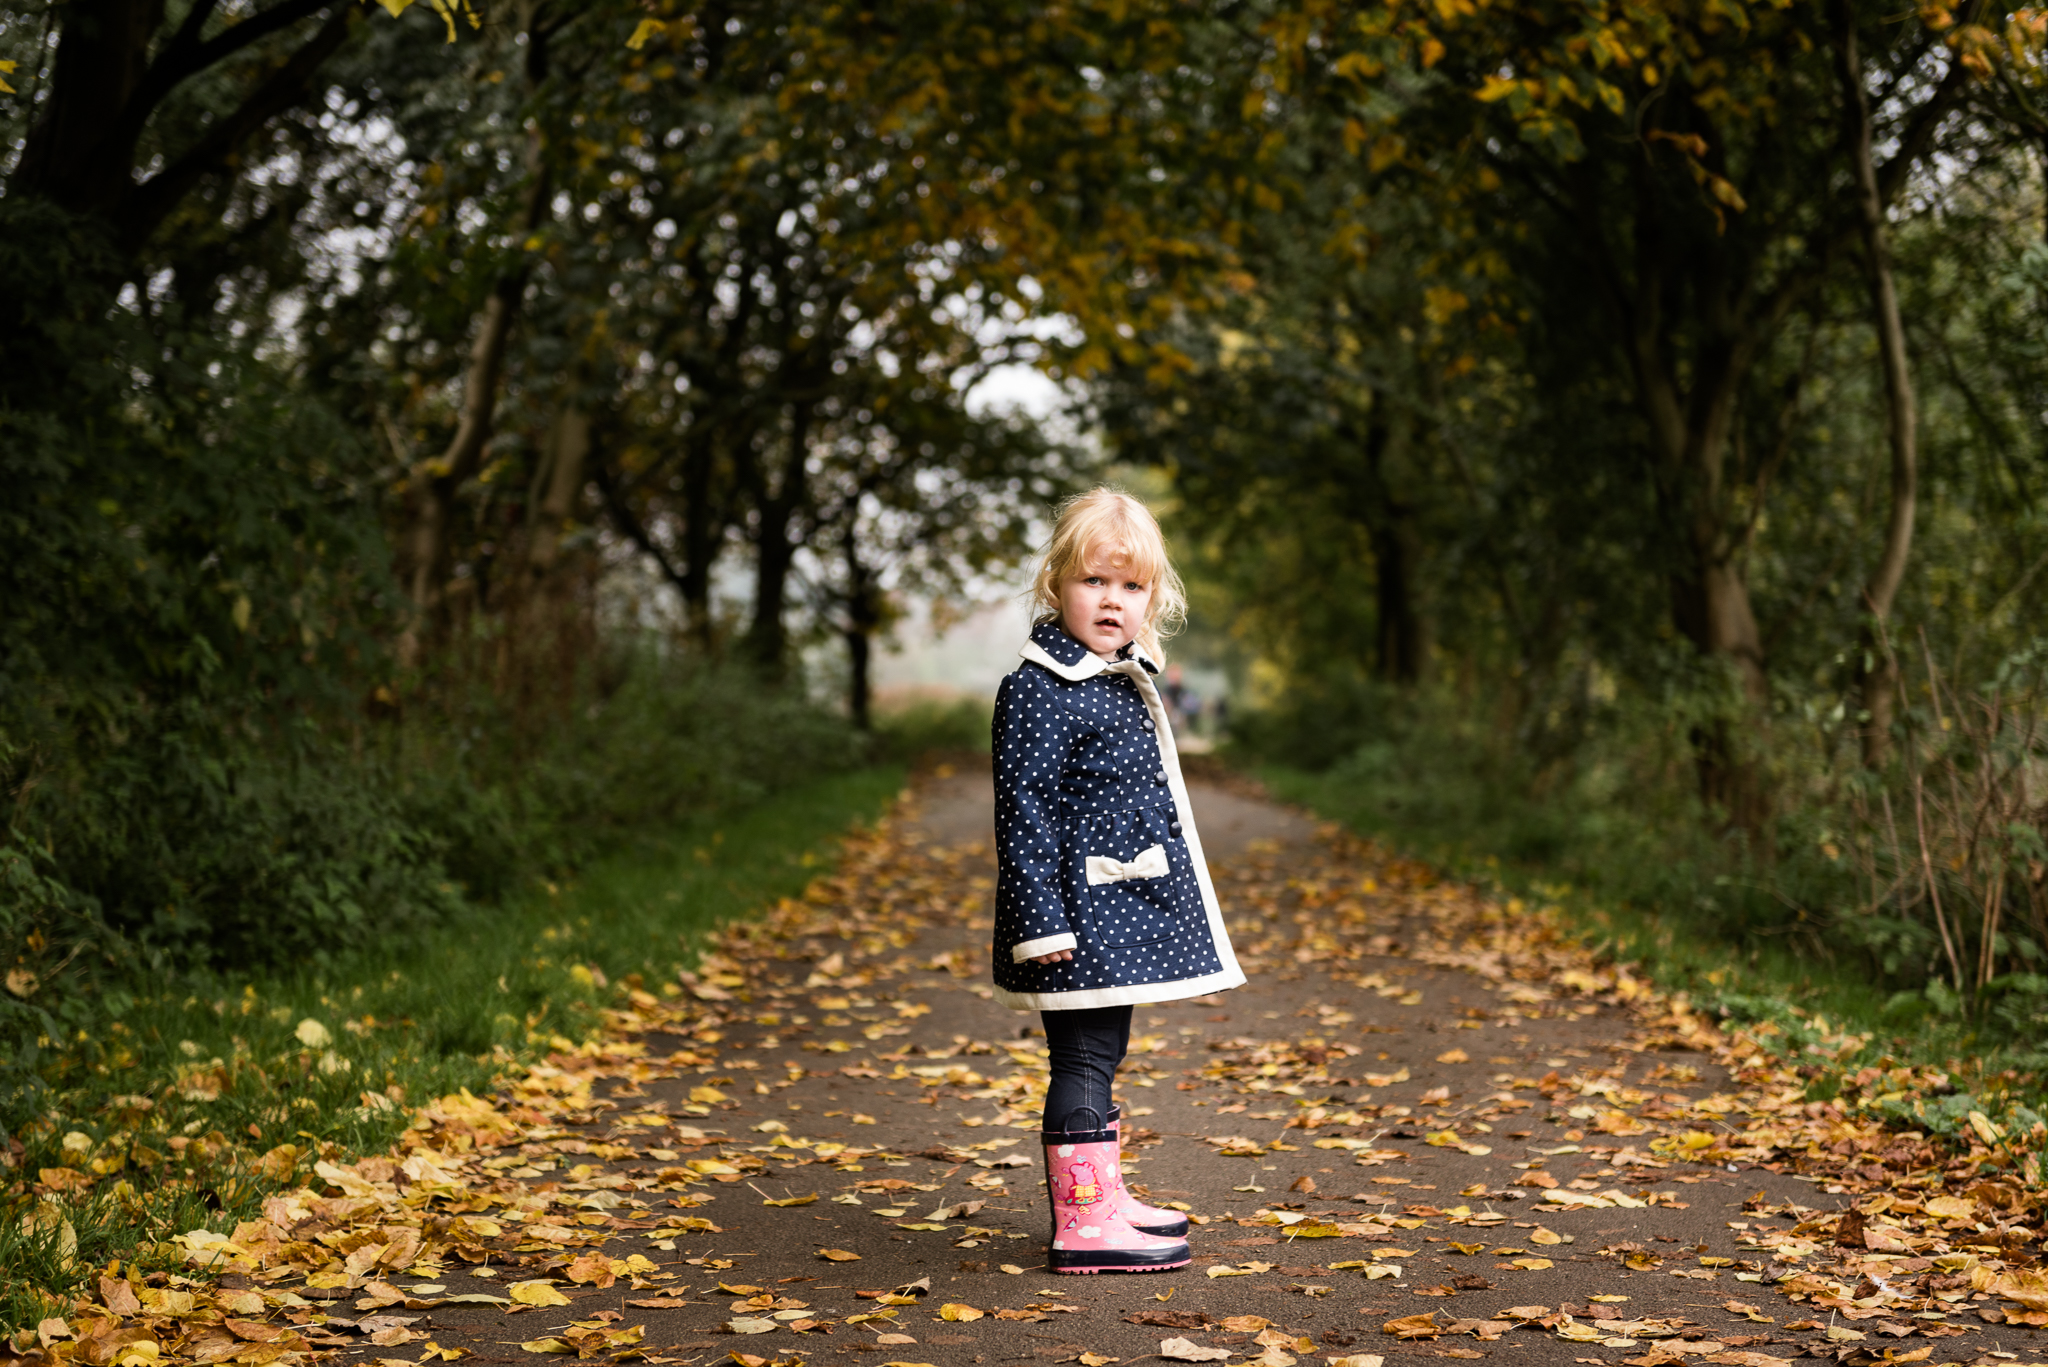 Staffordshire Documentary Family Photography Autumn Lifestyle Fall Leaves - Jenny Harper-5.jpg